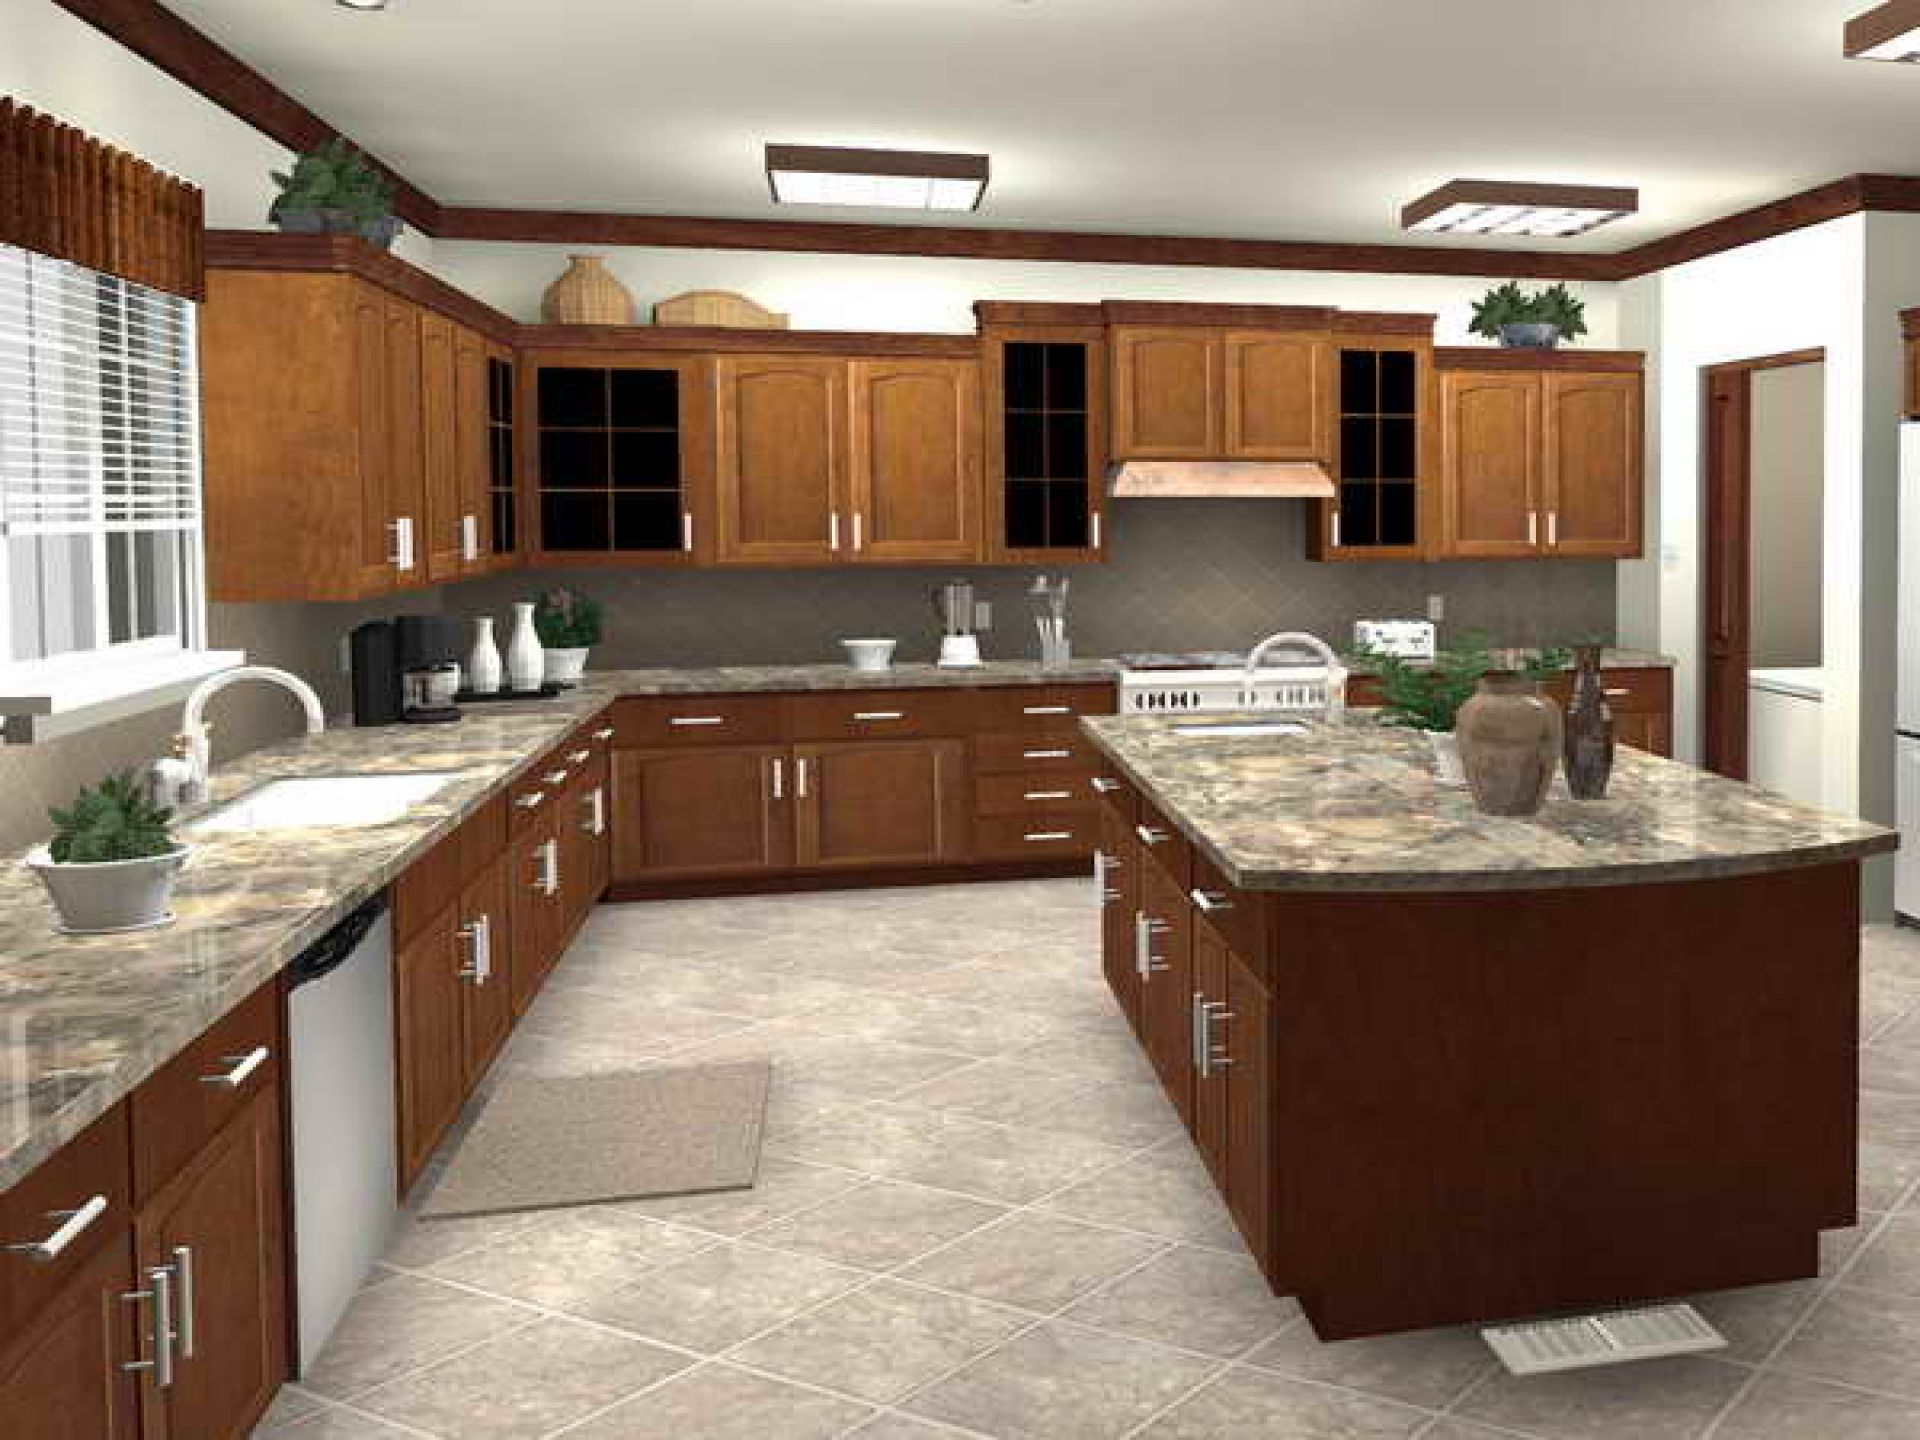 Top Kitchen Plans : Insightful kitchen floor ideas midcityeast